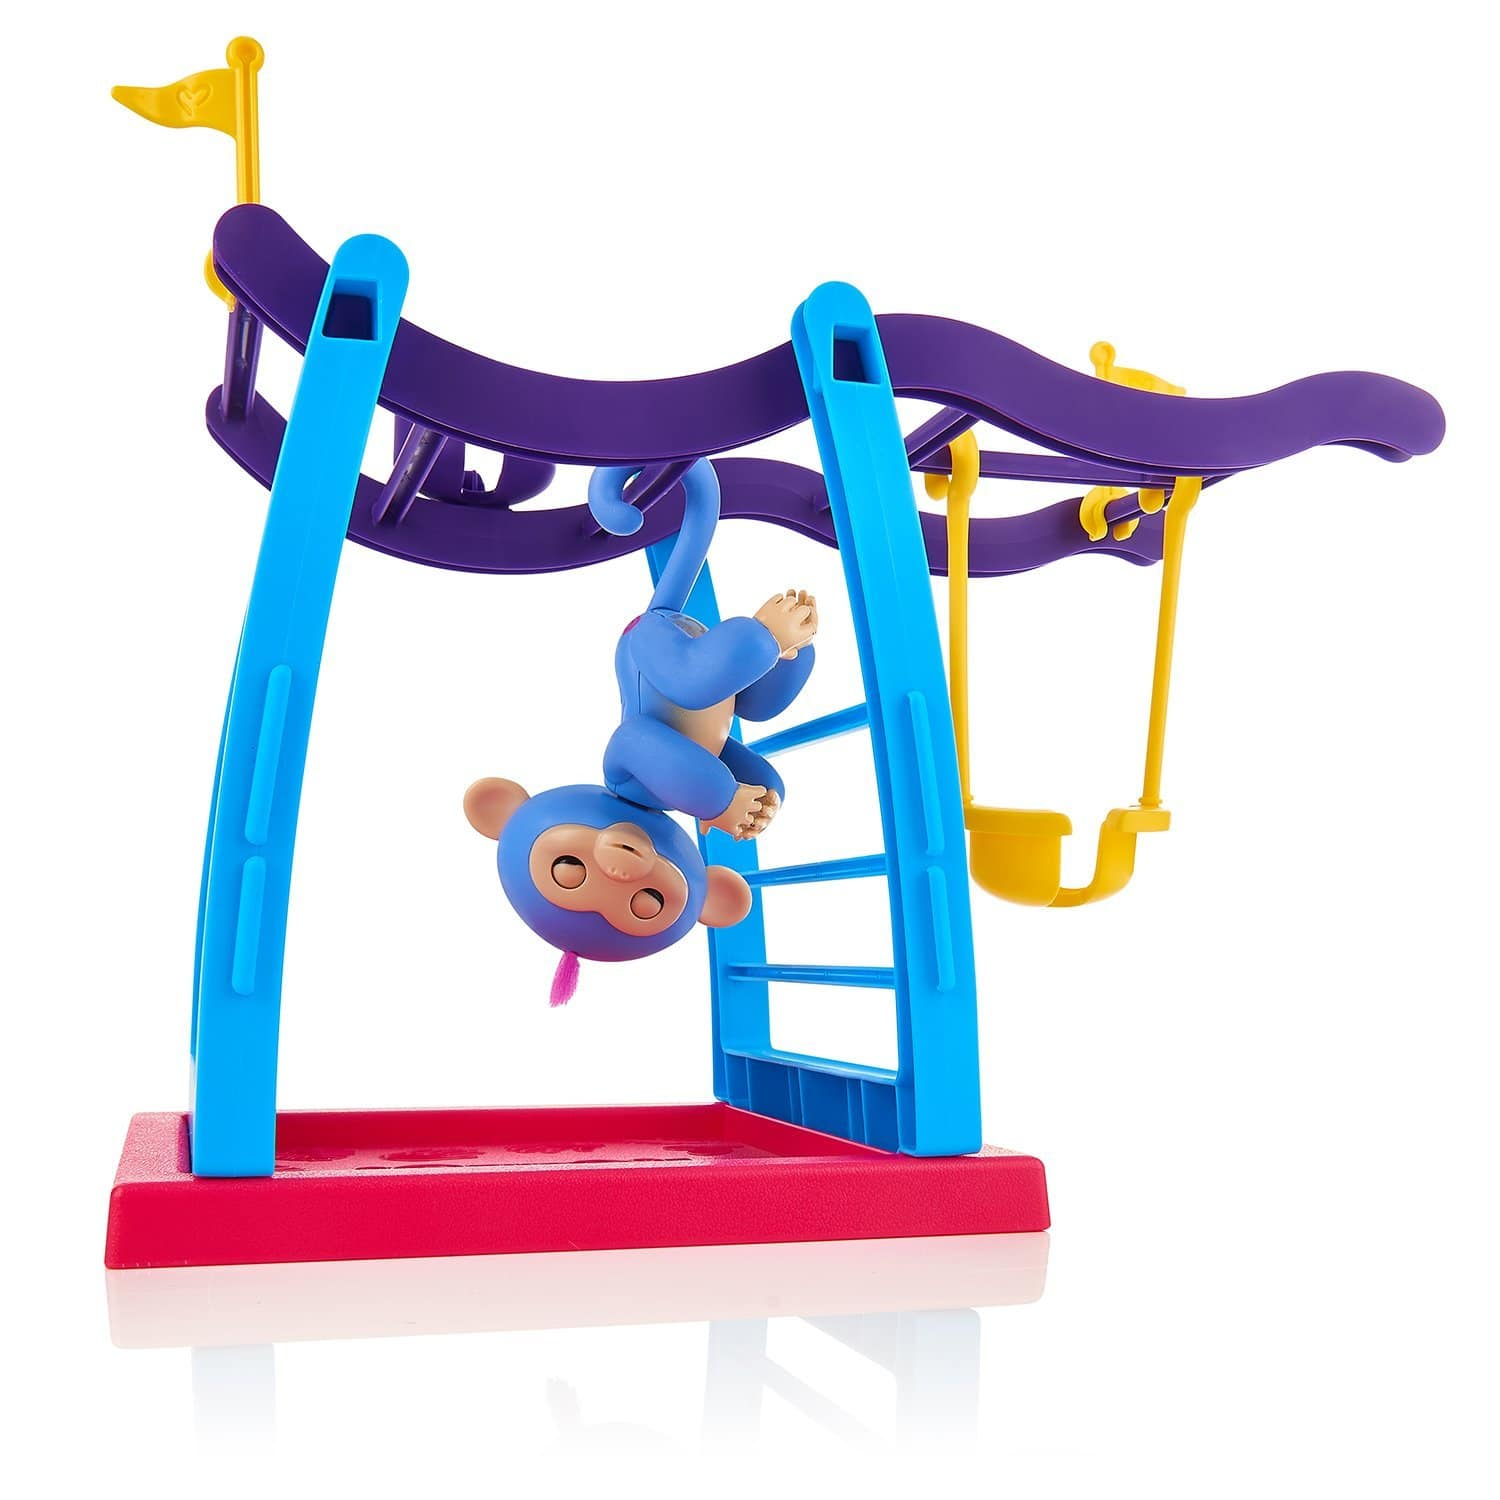 Fingerlings Playset - Monkey Bar Playground + Liv the Baby Monkey (Blue with Pink Hair) $24.99